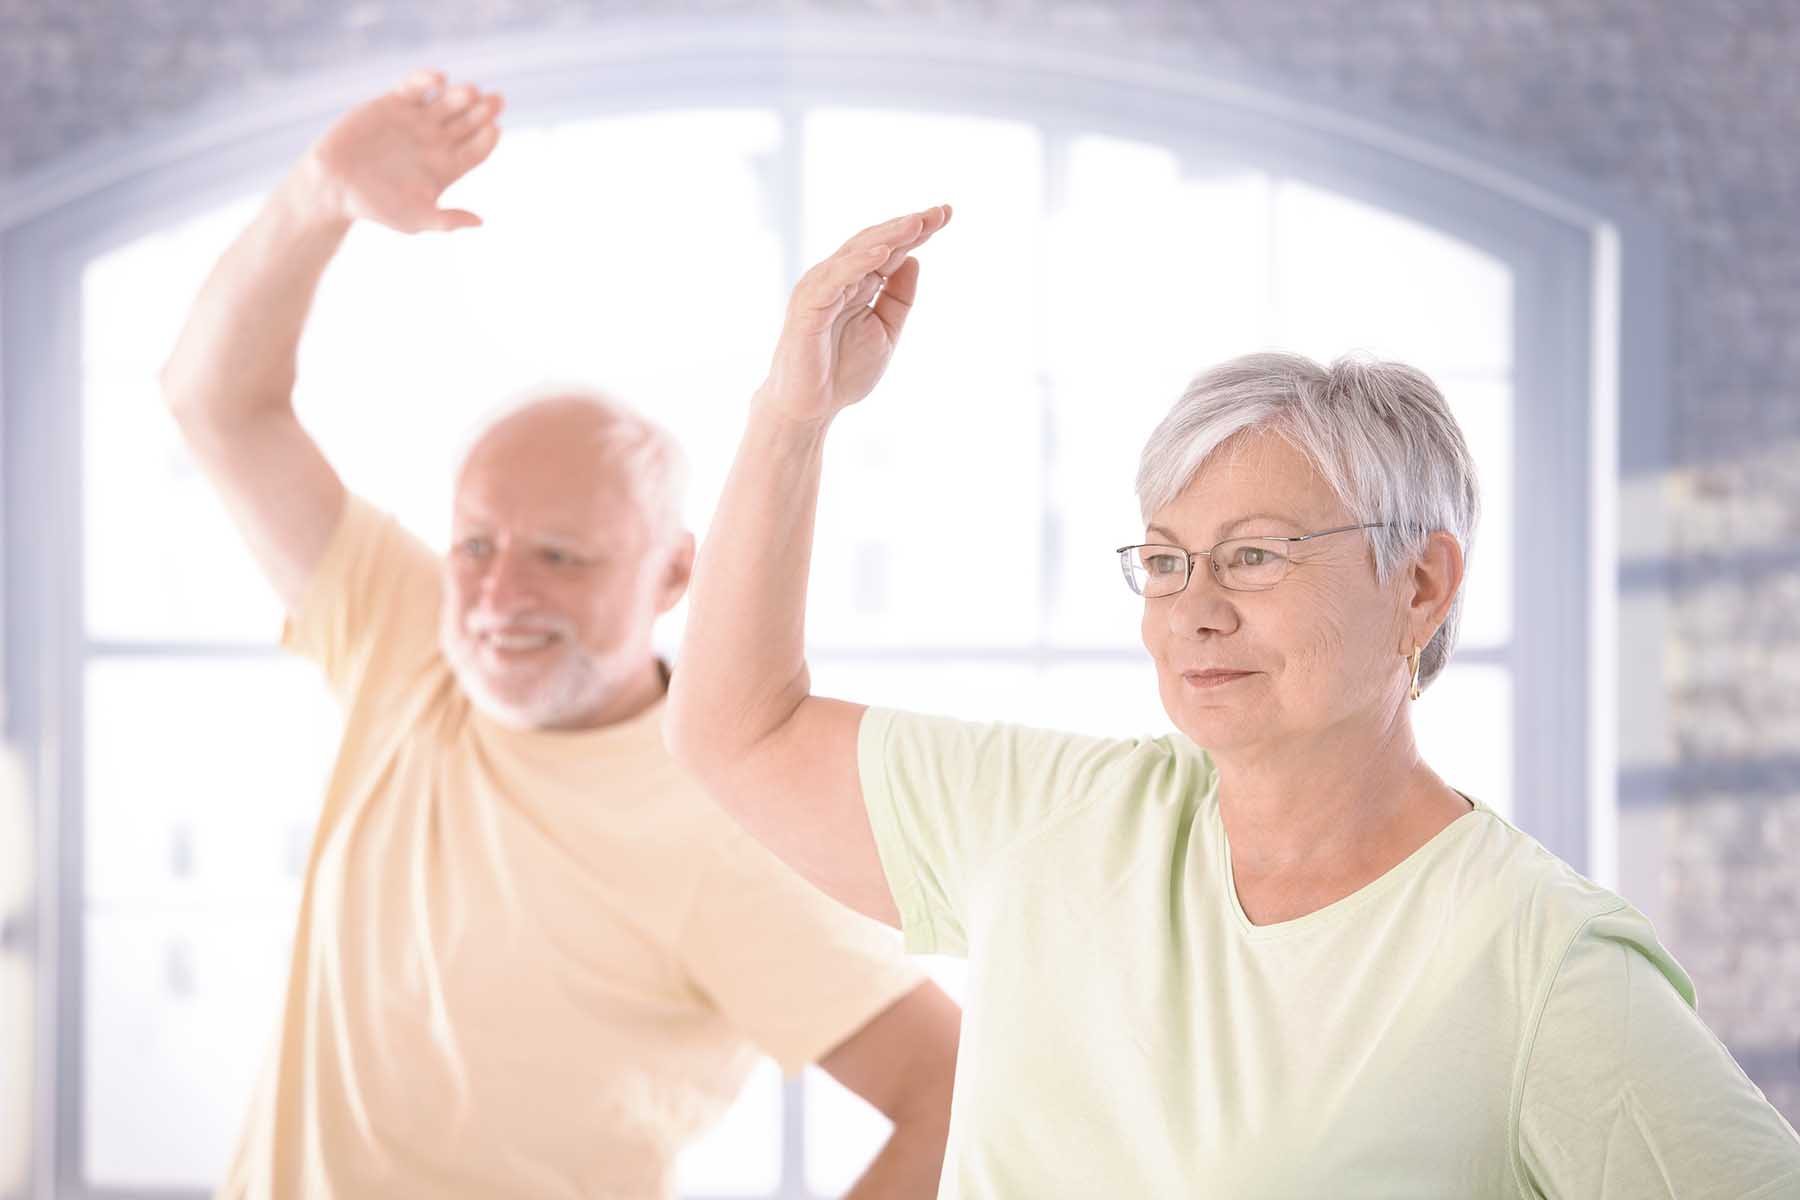 A photo of an older couple doing exercises.